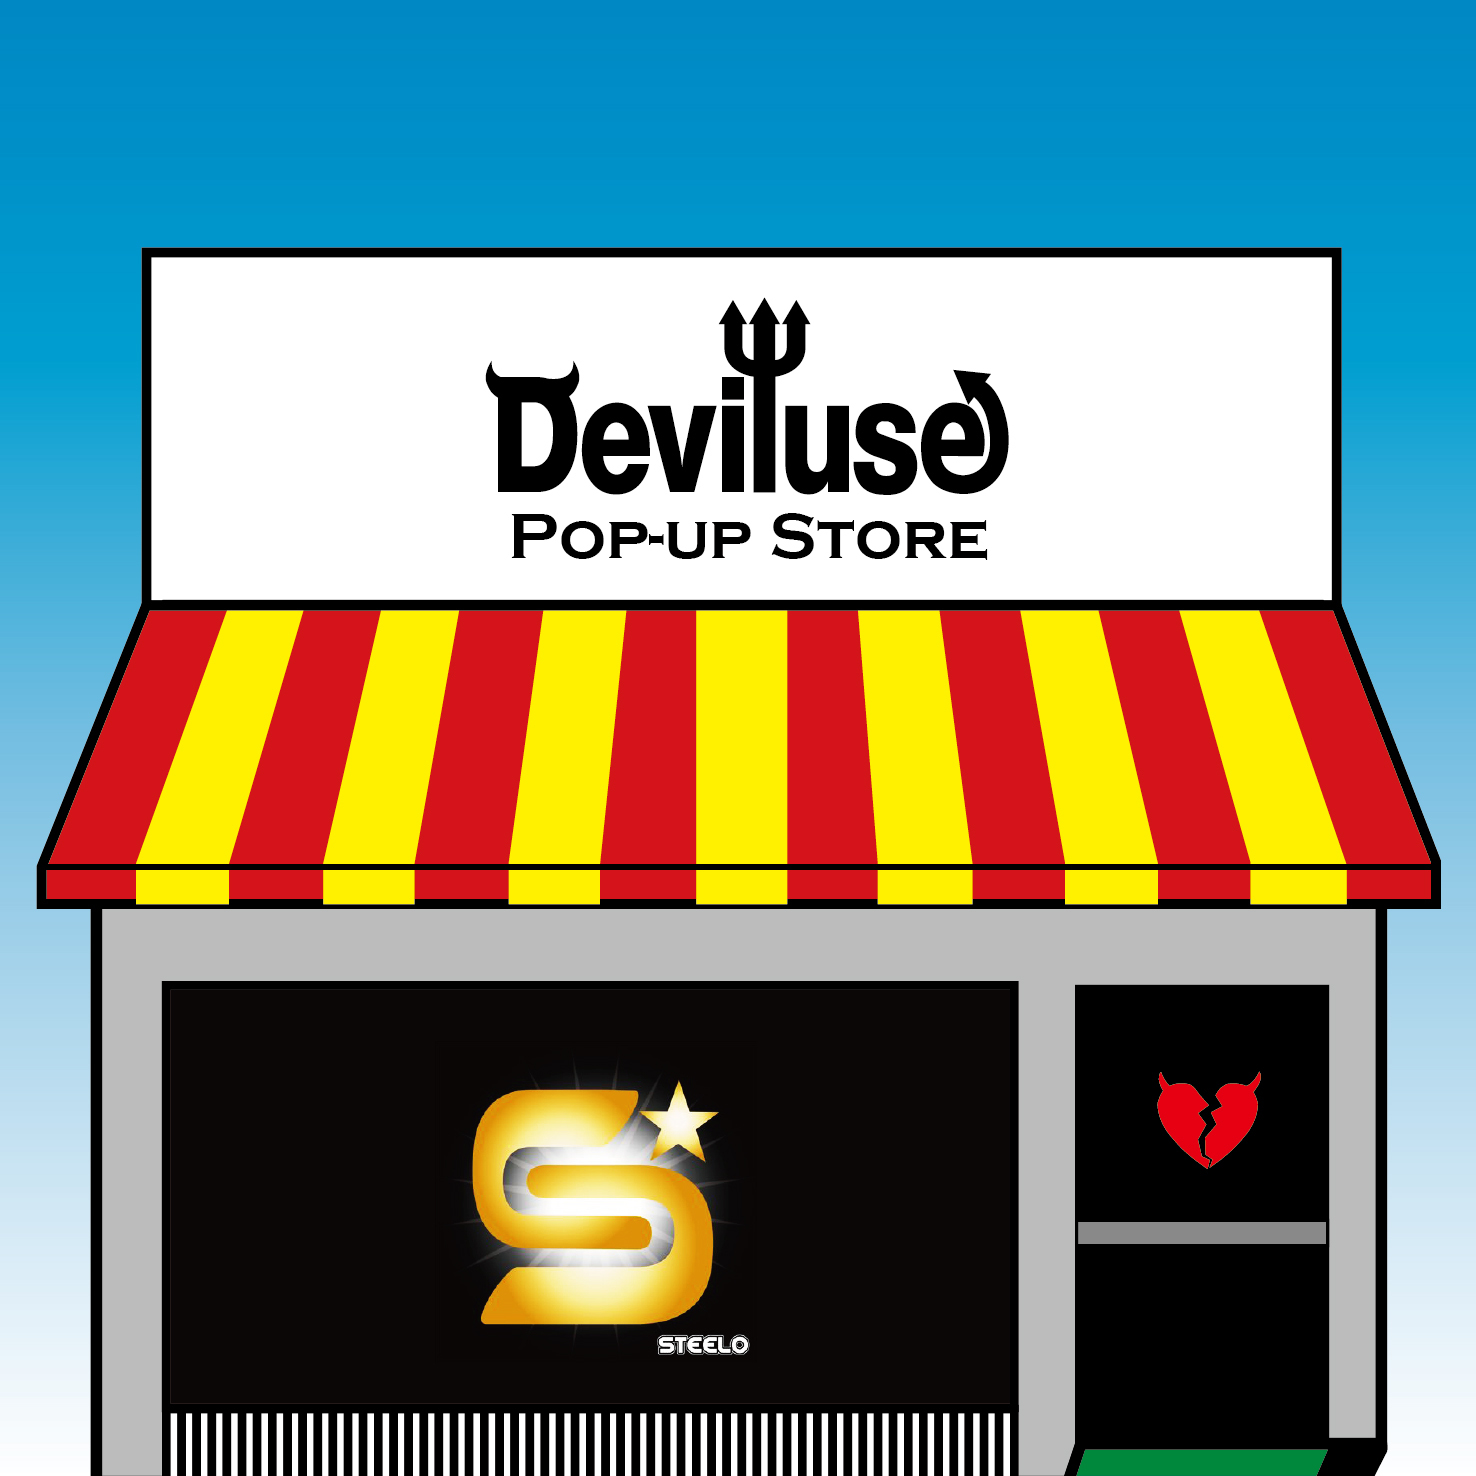 Deviluse POP-UP STORE開催のお知らせ!_c0097116_17404115.jpg